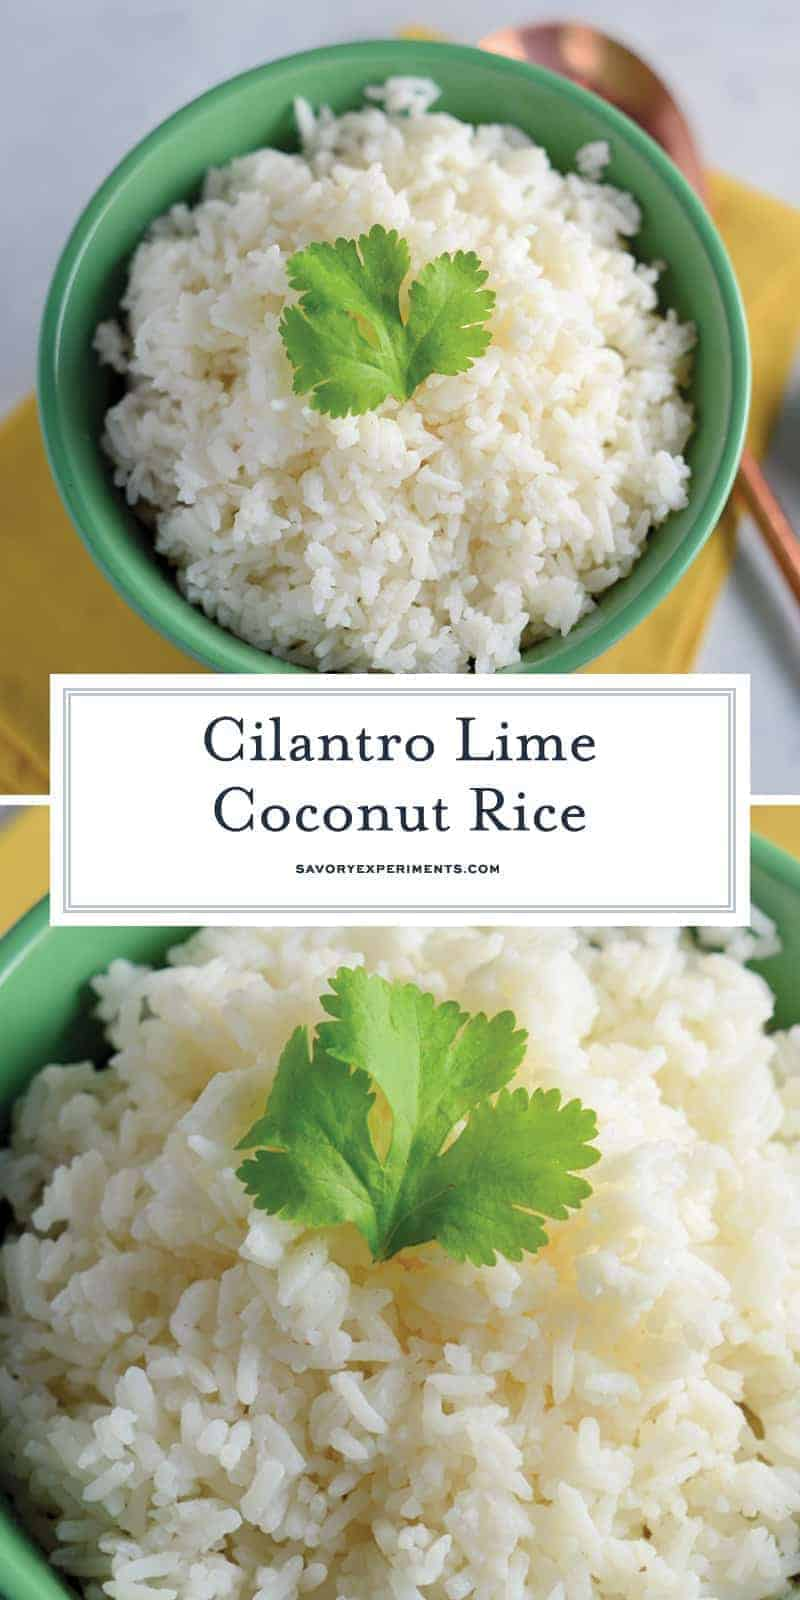 Cilantro Lime Coconut Rice uses coconut milk, fresh lime and cilantro for the best sticky rice recipe ever! Pairs with any Asian dish. #coconutrice #stickyrice #jasminerice www.savoryexperiments.com